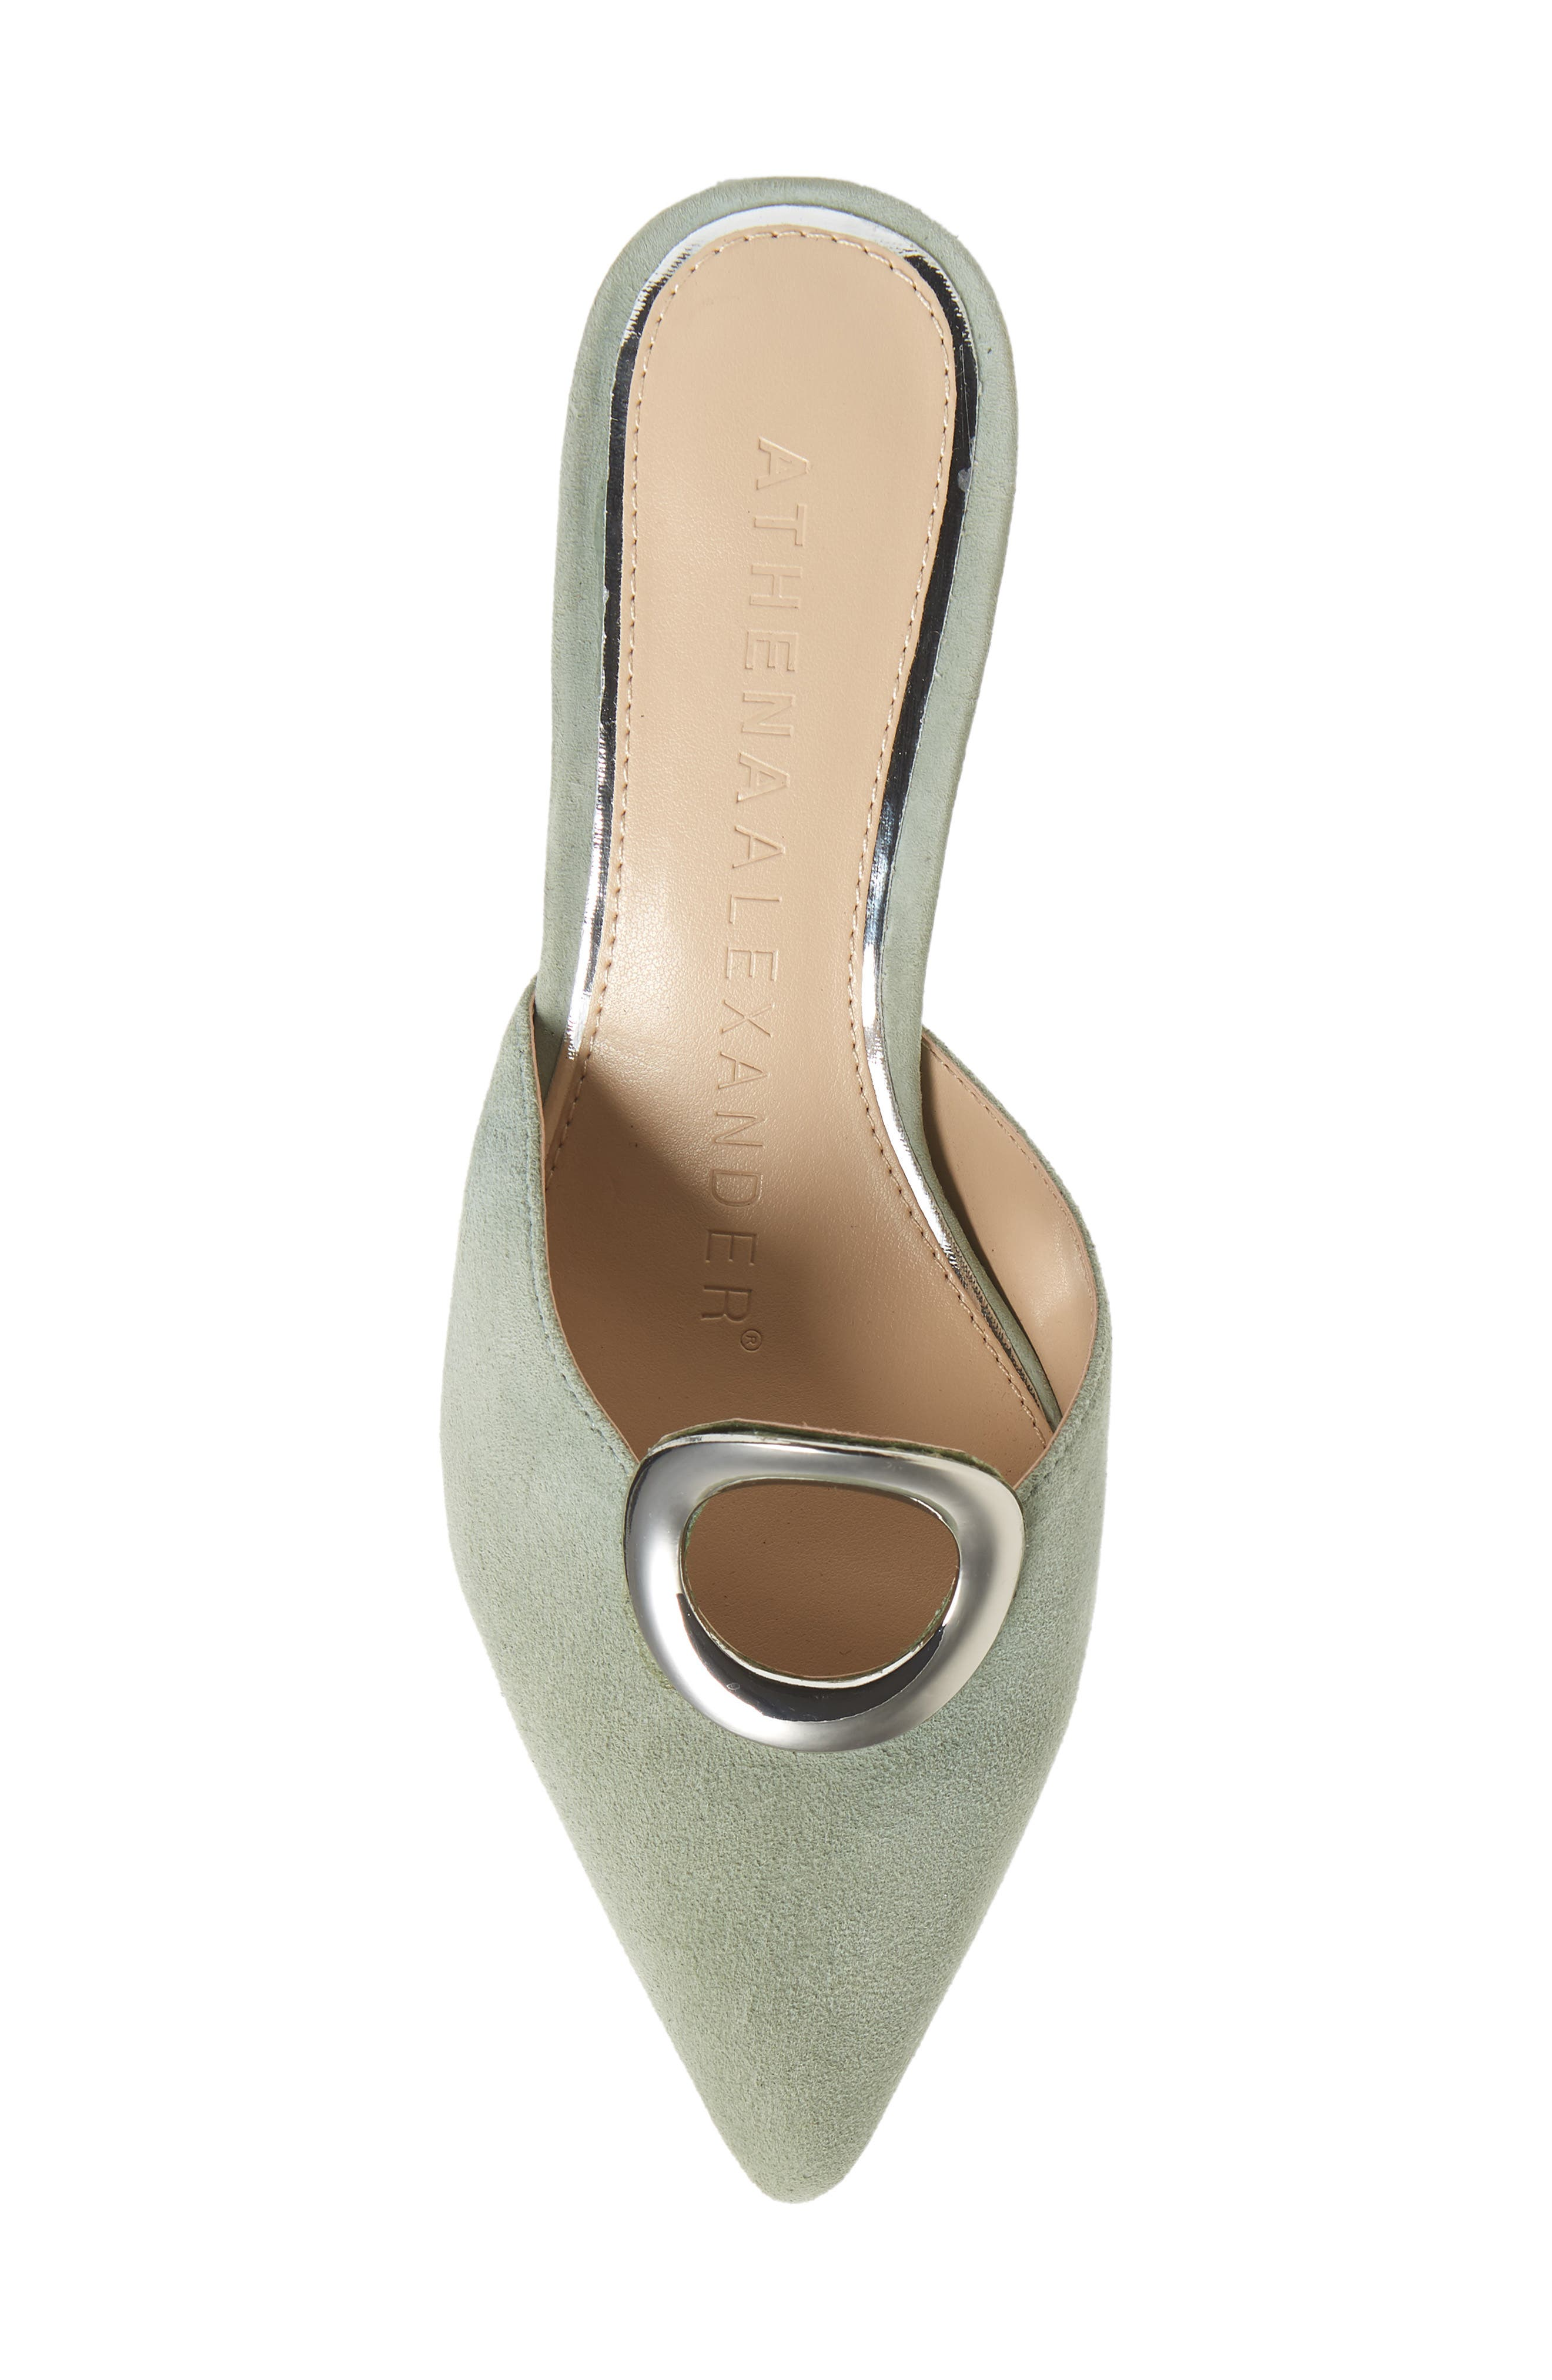 ATHENA ALEXANDER, Pointy Toe Mule, Alternate thumbnail 5, color, GREEN SUEDE